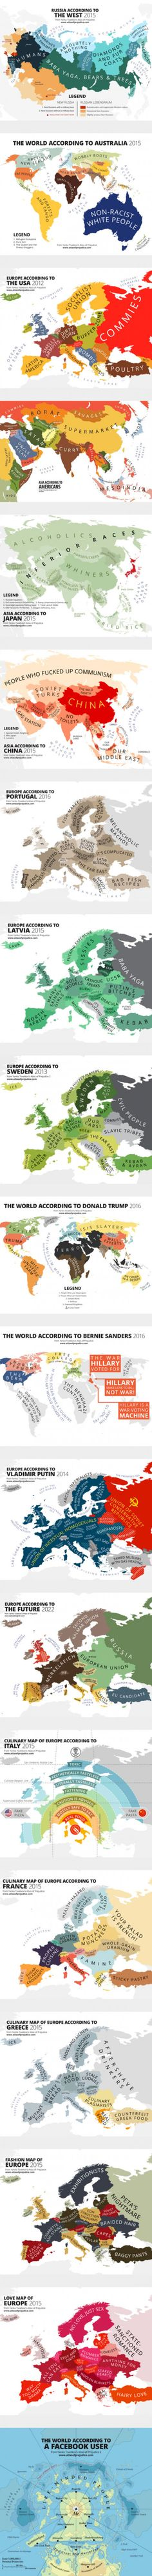 19 very politically incorrect world map of stereotypes